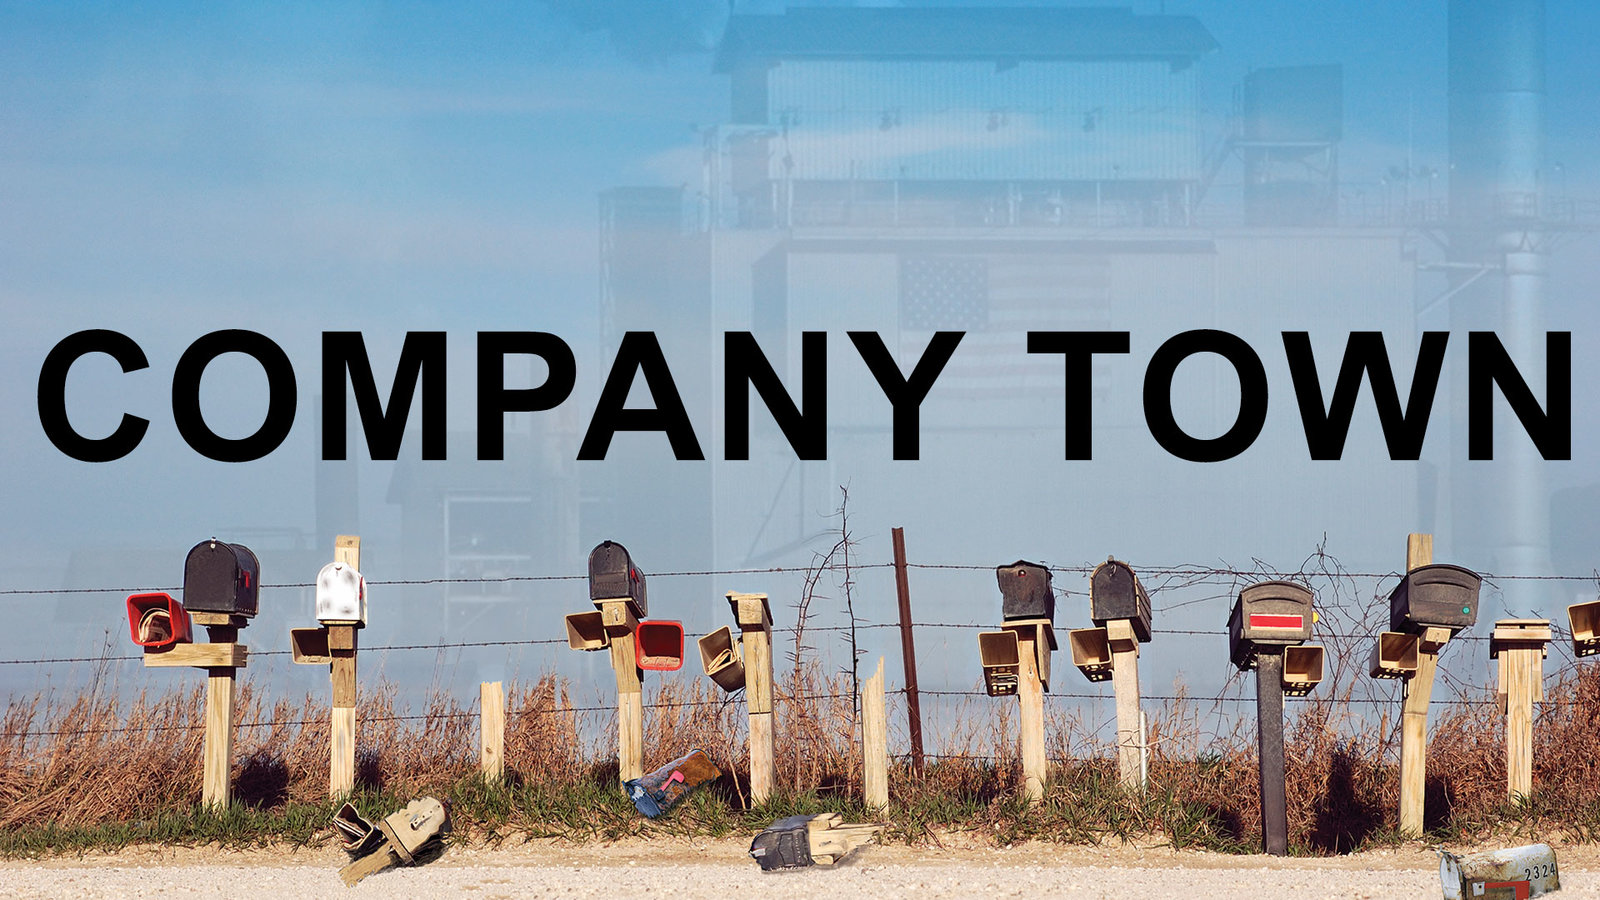 Company Town - Environmental Injustice, Corporate Accountability, & Community Action